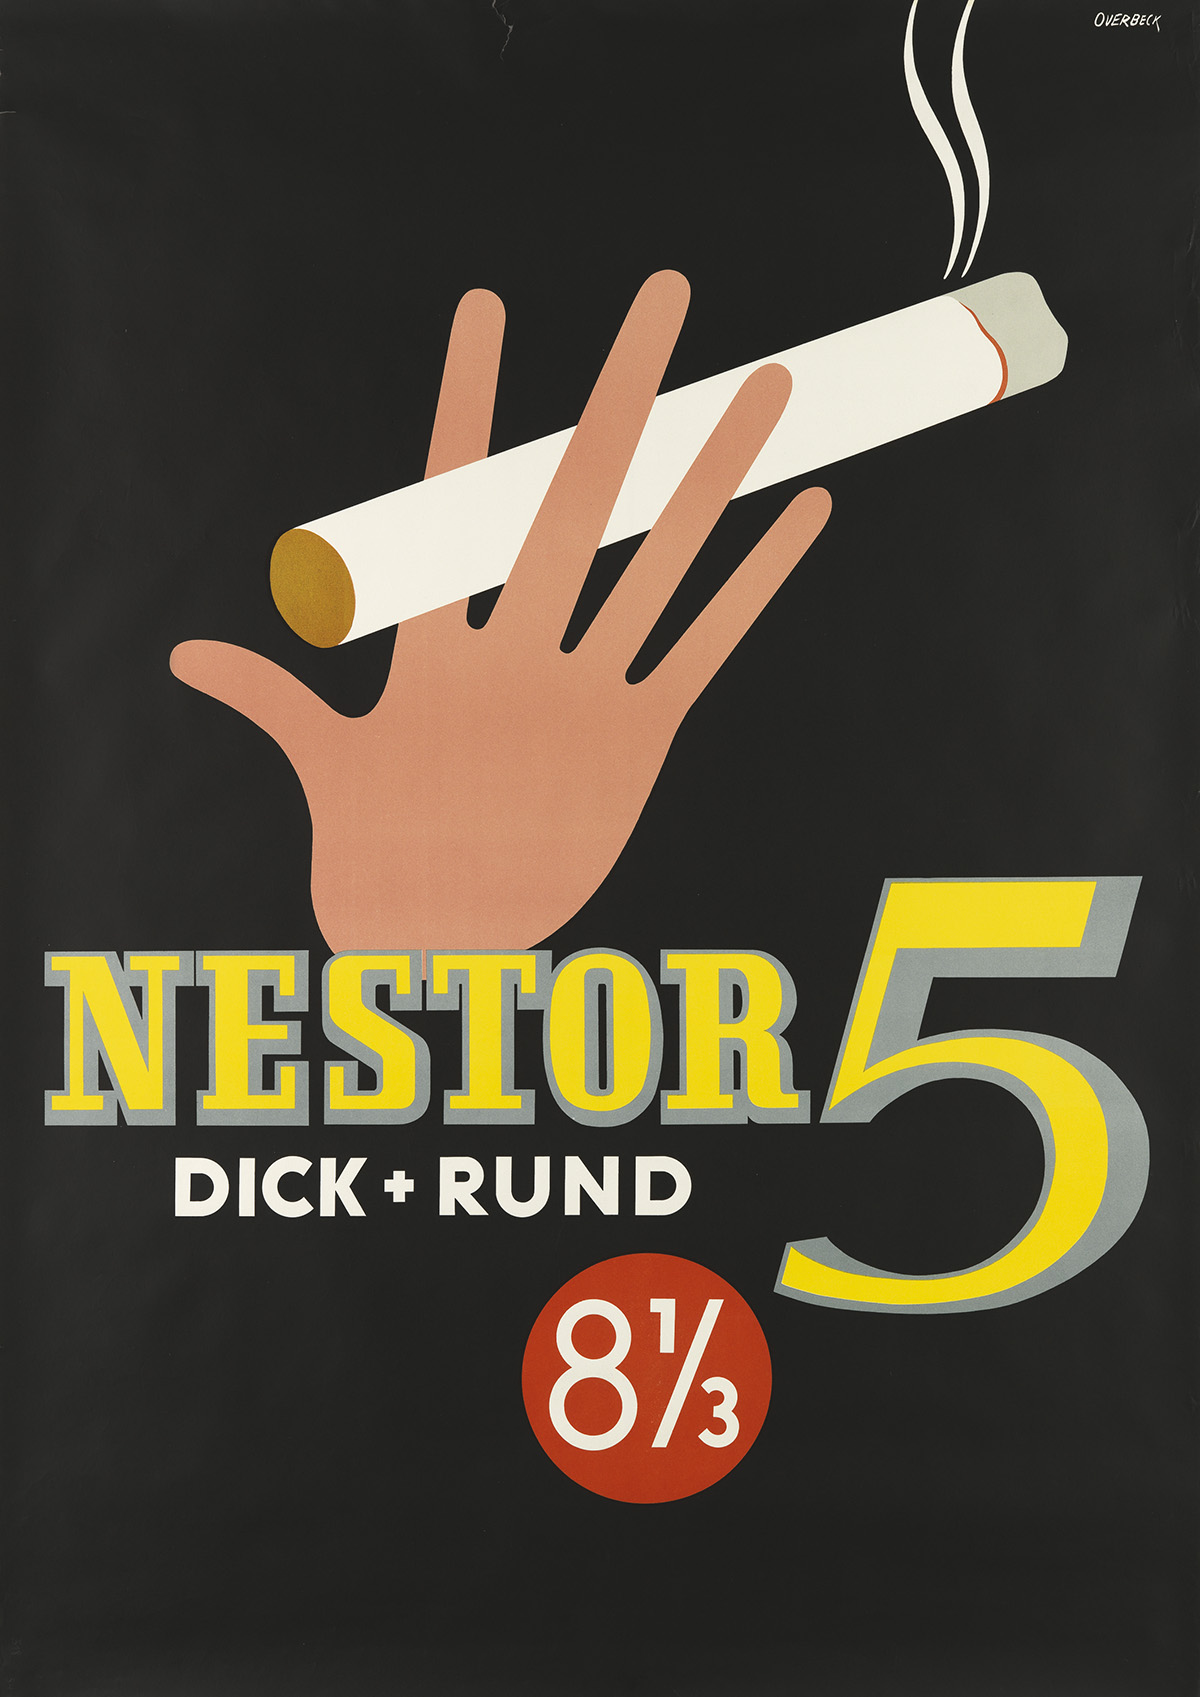 VARIOUS-ARTISTS-[CIGARETTE-ADVERTISING]-Group-of-3-posters-S